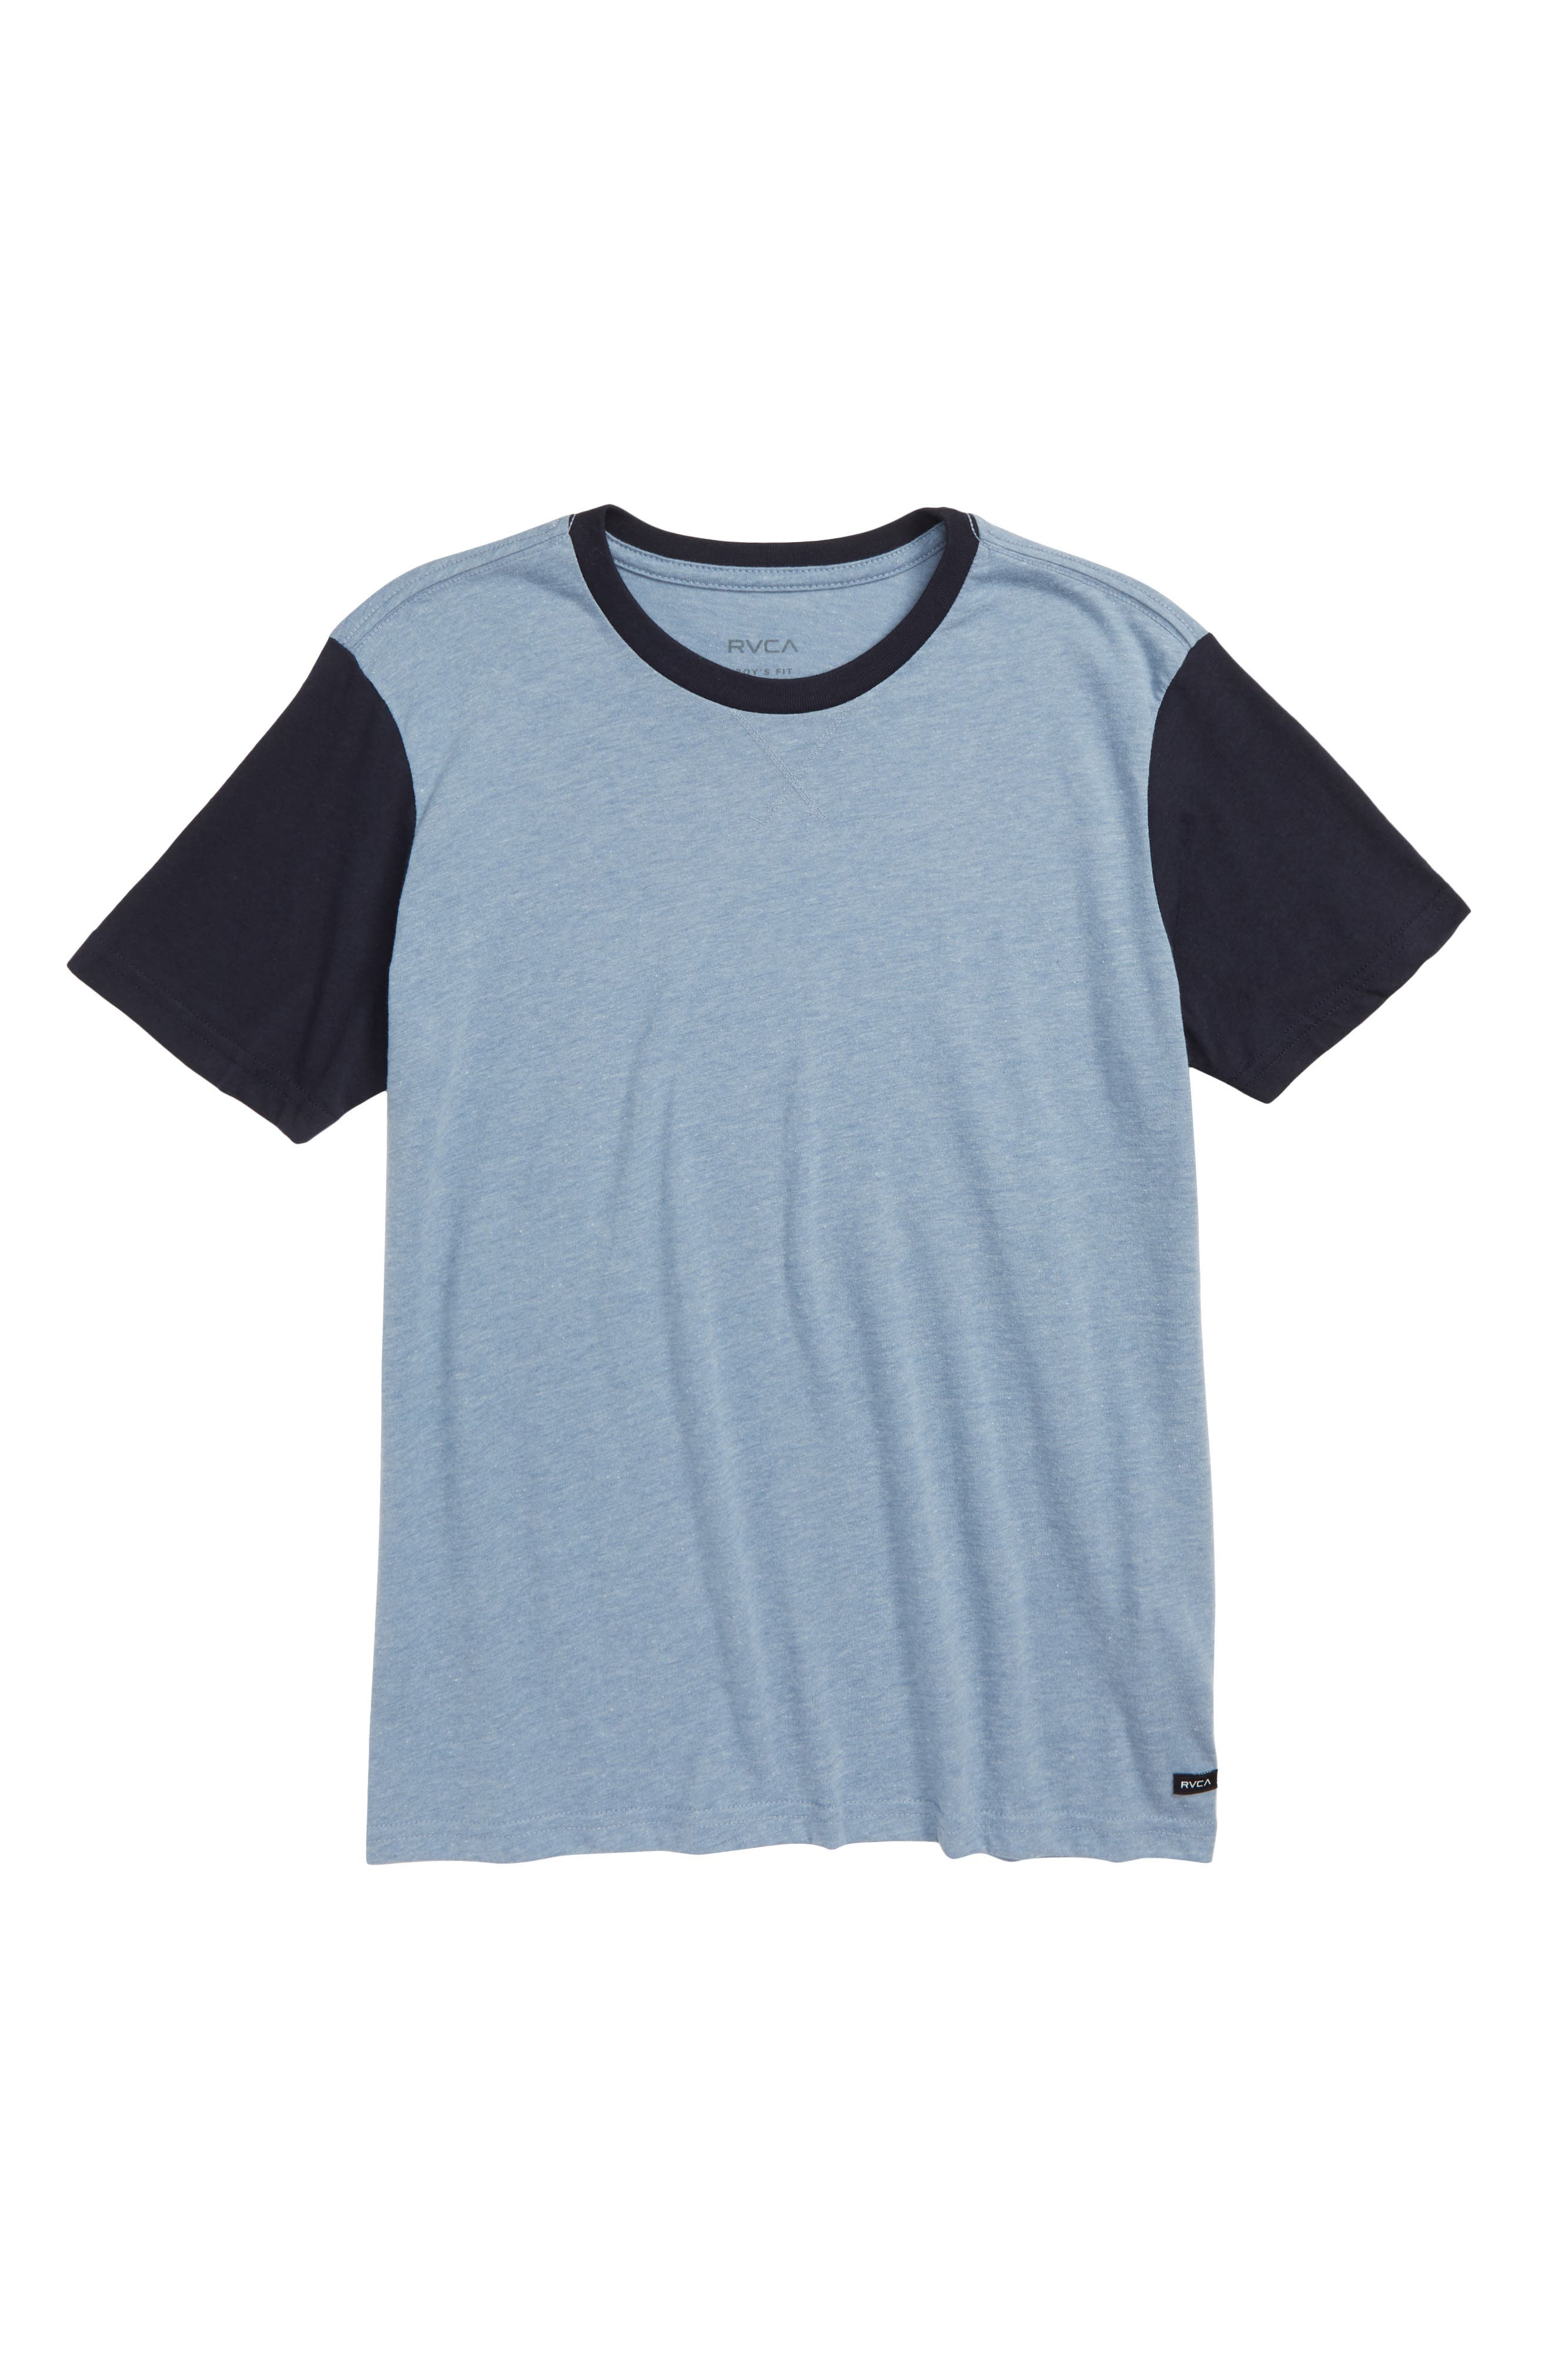 Pick Up II T-Shirt,                             Main thumbnail 1, color,                             BLUE